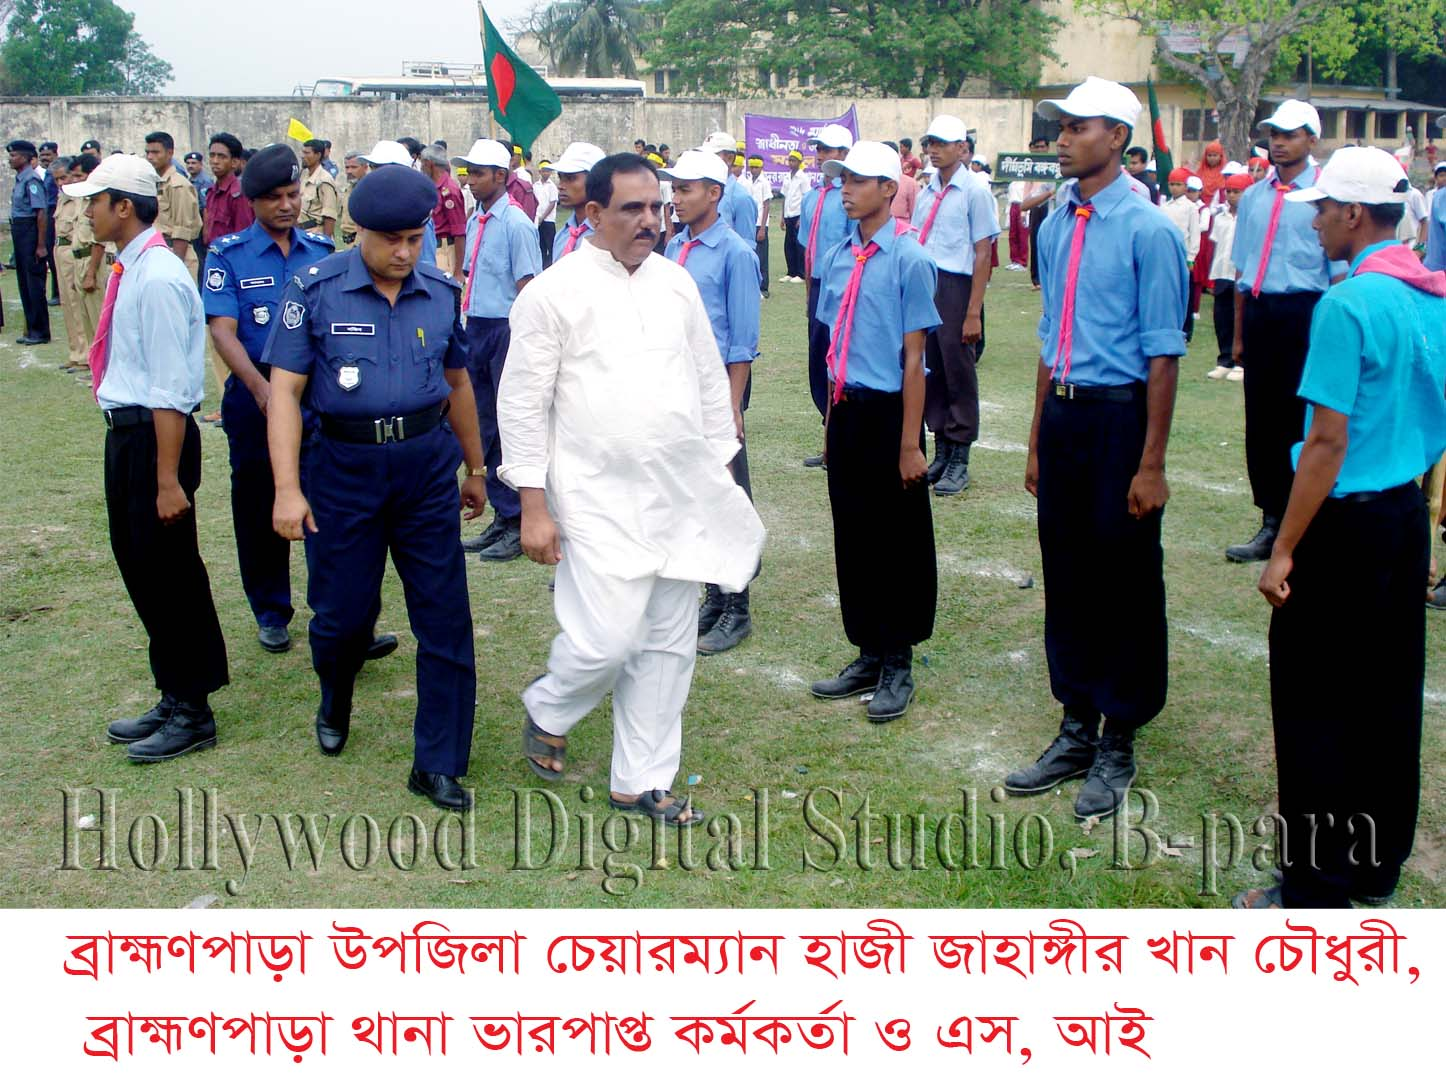 comilla muslim personals Comilla cantonment (bengali: কুমিল্লা সেনানিবাস) is a cantonment located near mainamati outside comilla city in bangladesh the personnel of bangladesh army with local civilian inhabit herethe 33rd infantry division hq is also located here bangladesh military .